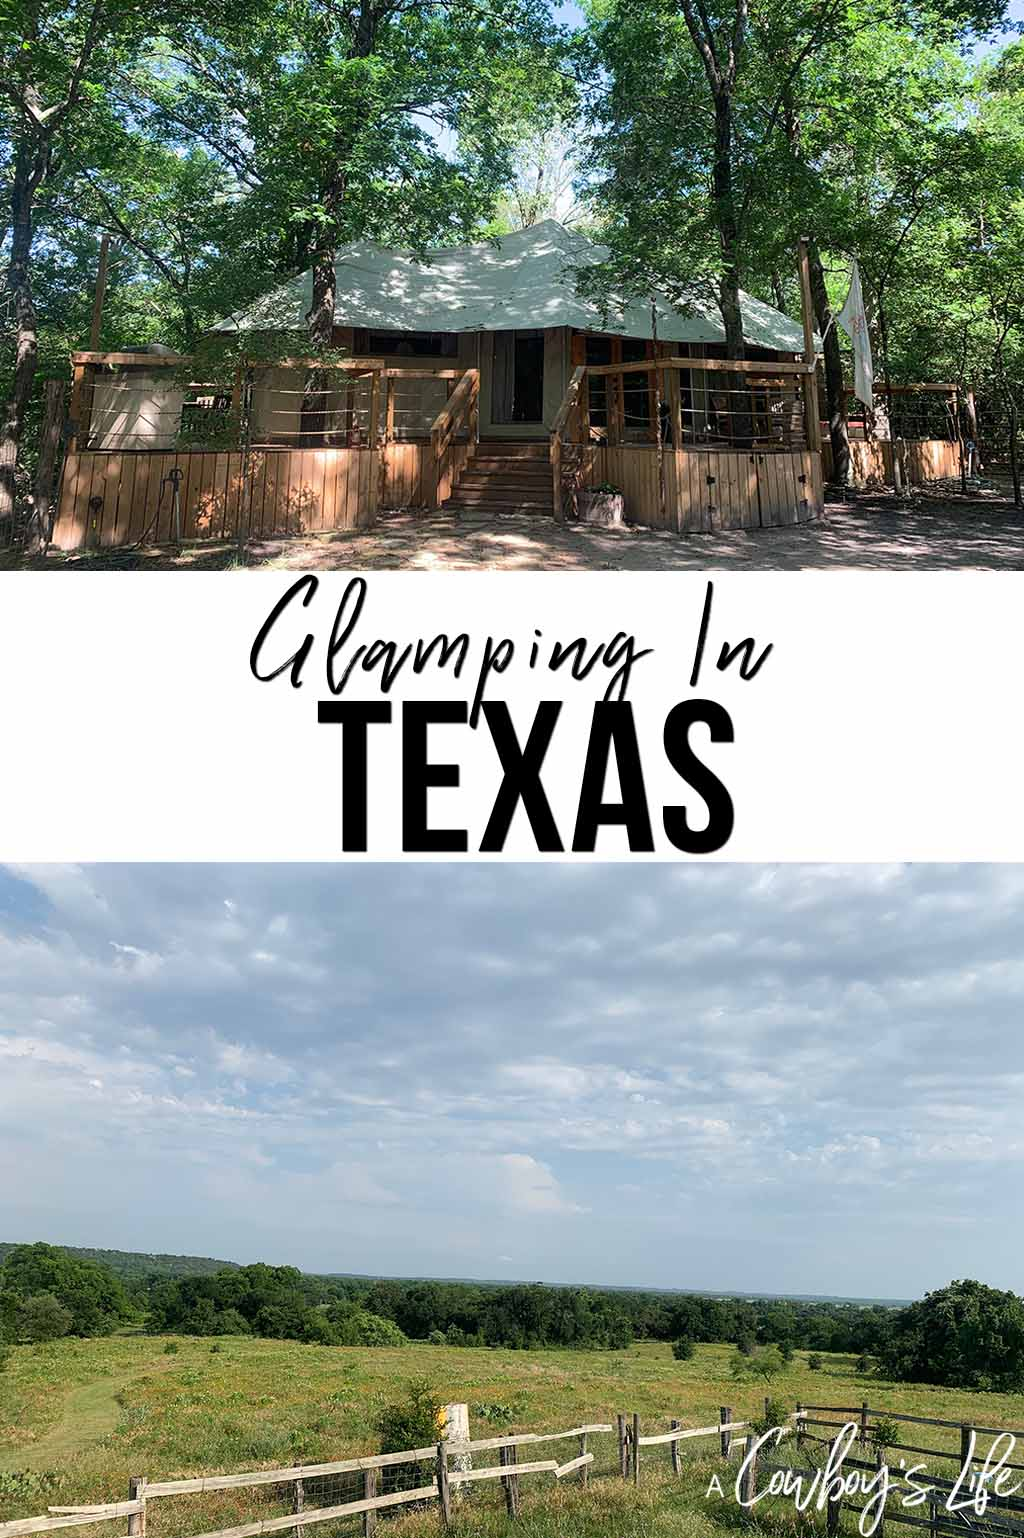 Glamping in Texas | Texas Camping | Texas Vacations |#glamping #camping #texasglamping